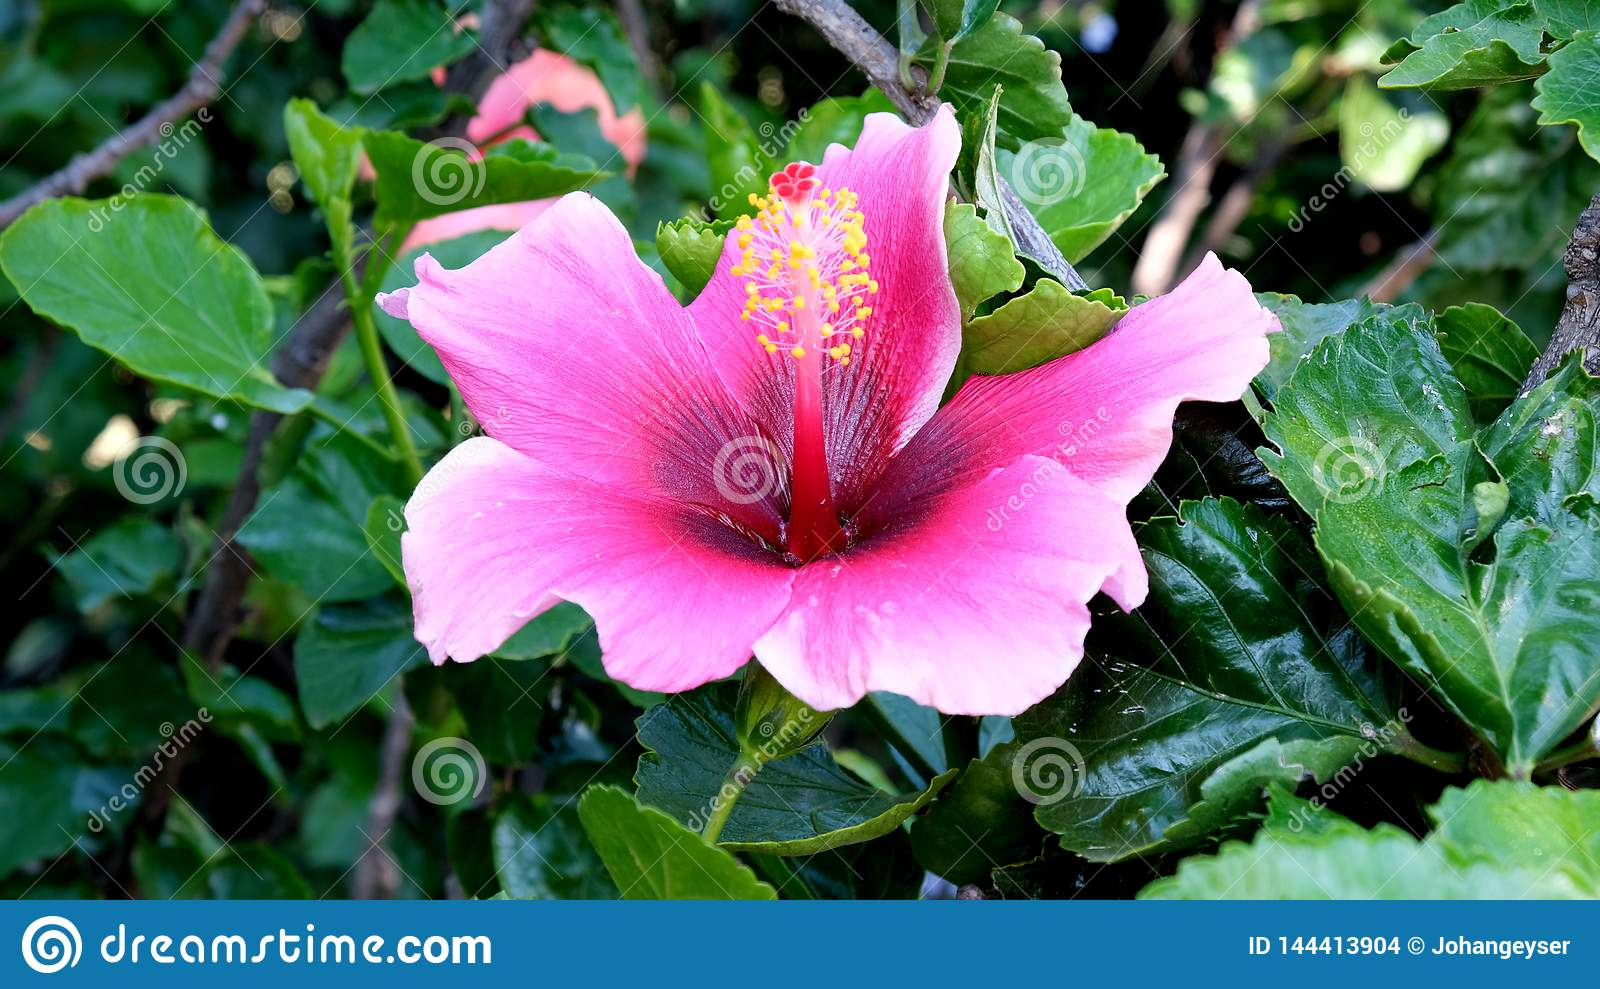 A rosy pink flower of a hibiscus shrub